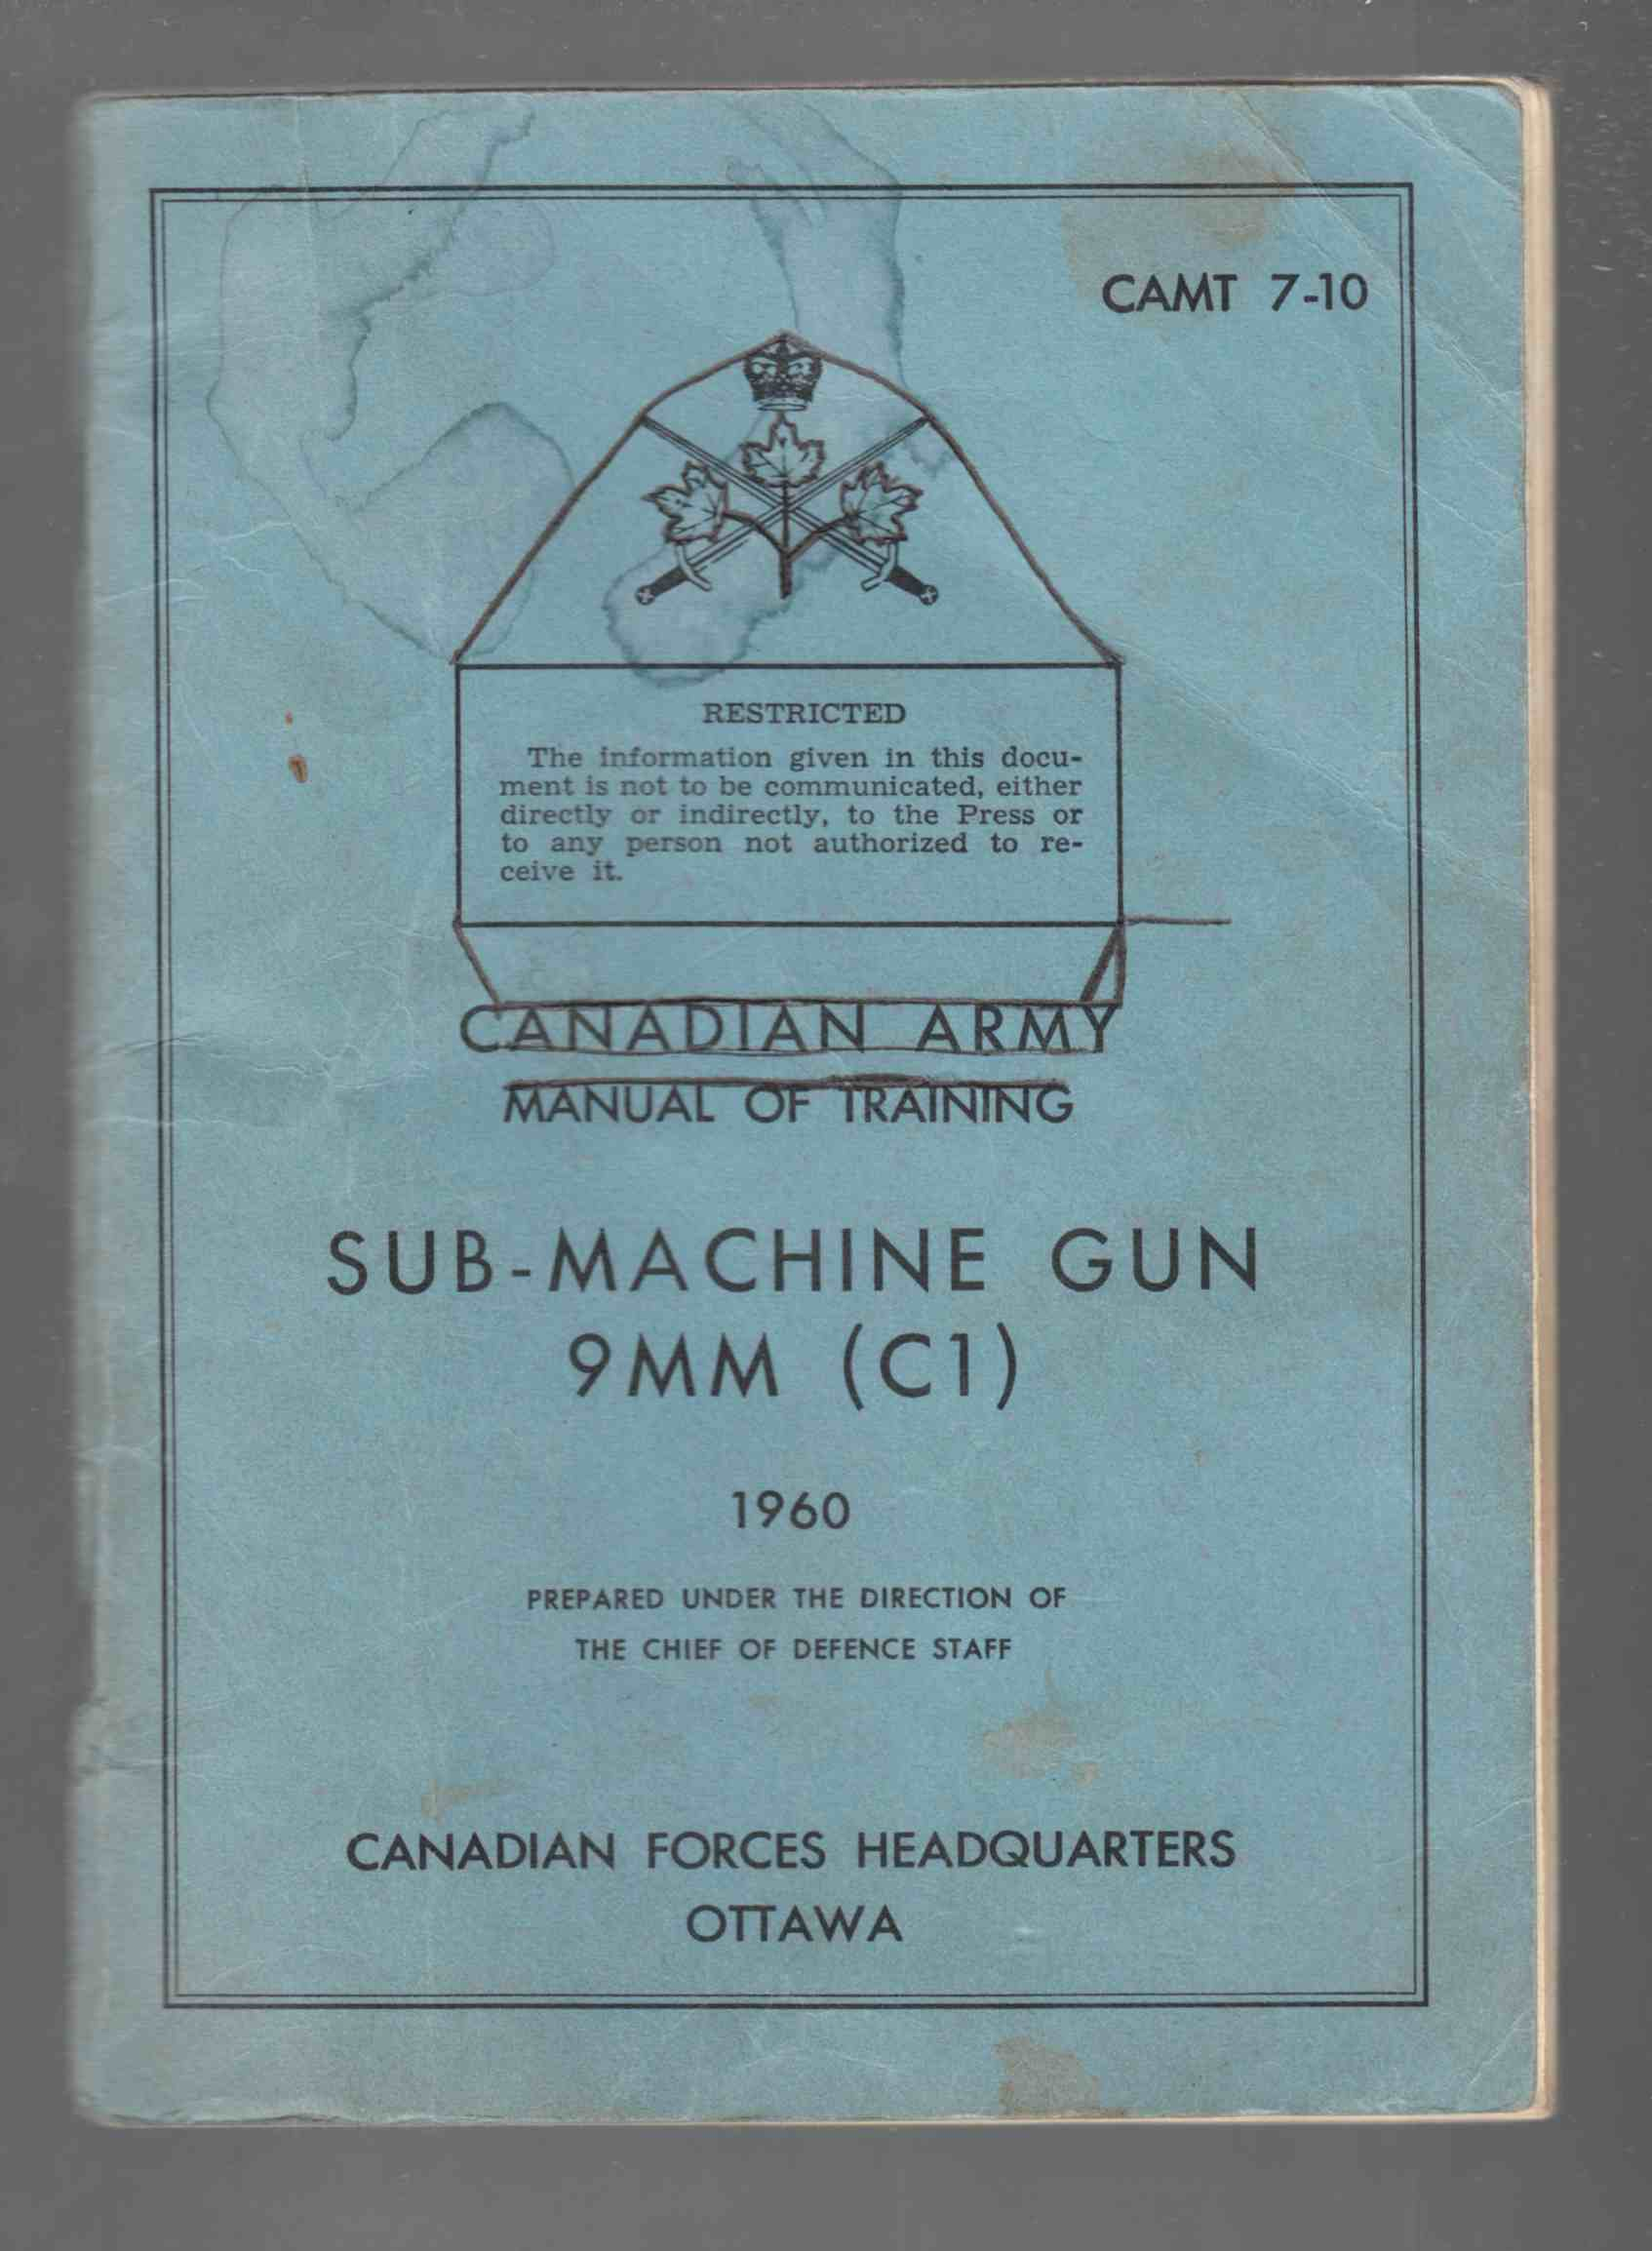 Image for Canadian Army Manual of Training Sub-Machine Gun 9mm (C1) 1960 CAMT 7-10